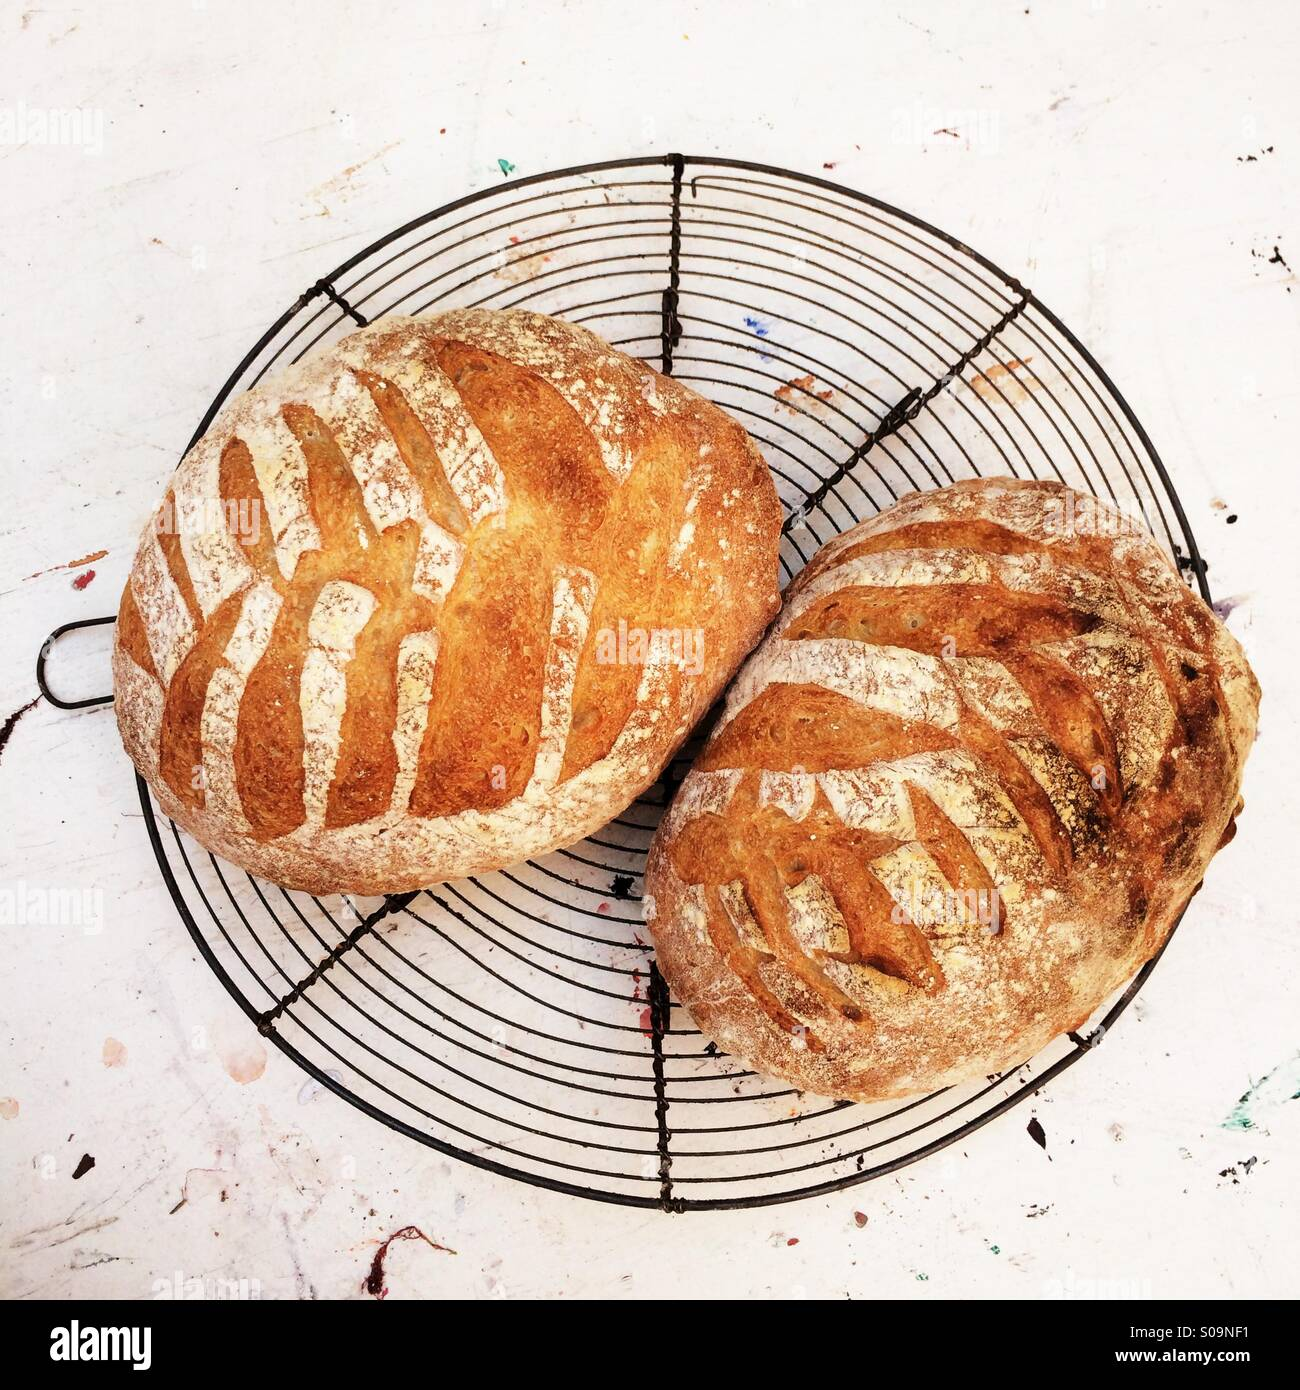 Two loaves of freshly baked homemade sourdough bread. - Stock Image